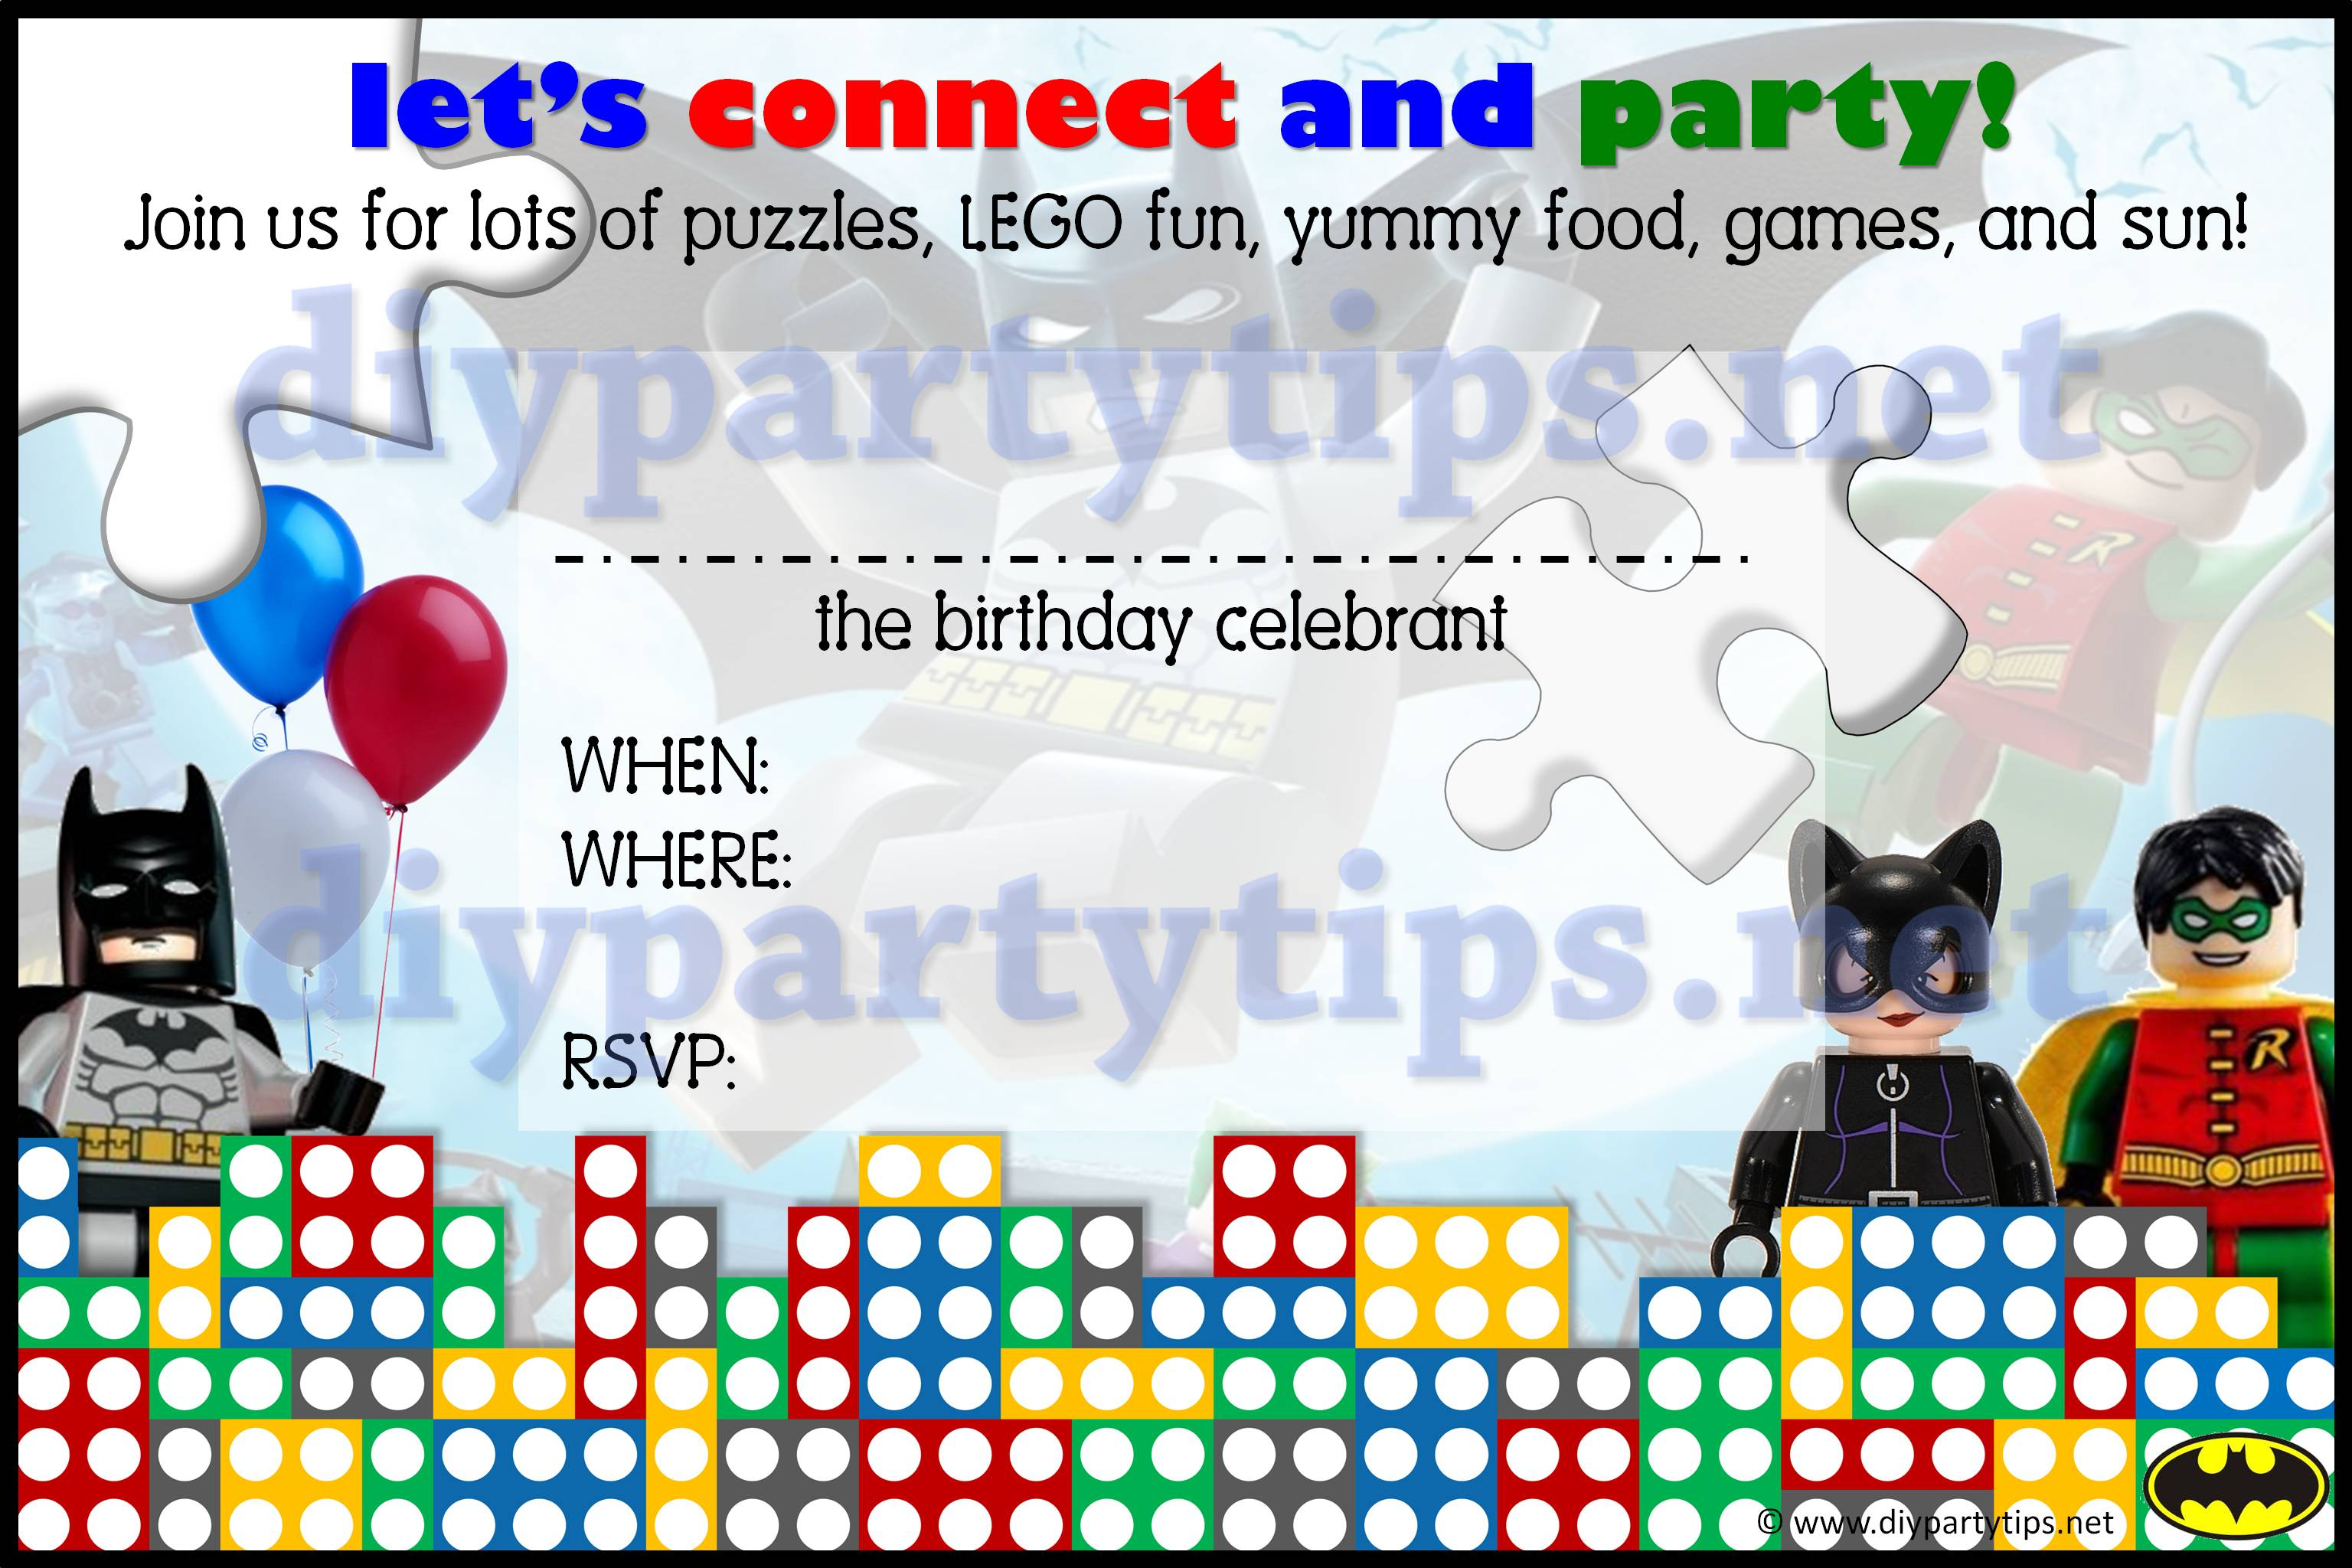 FREE PRINTABLE Lego Party Invitation Lolas DIY Party Tips - Party invitation template: free printable birthday party invitation templates